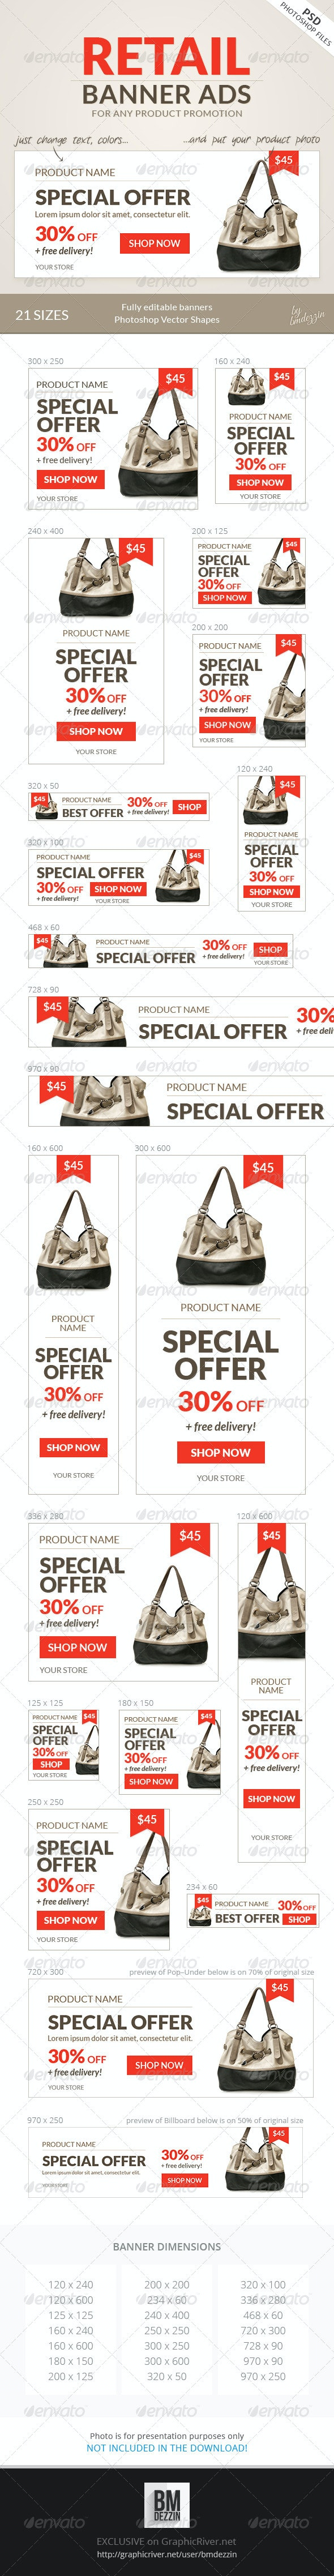 Retail Banner Ads - Banners & Ads Web Elements